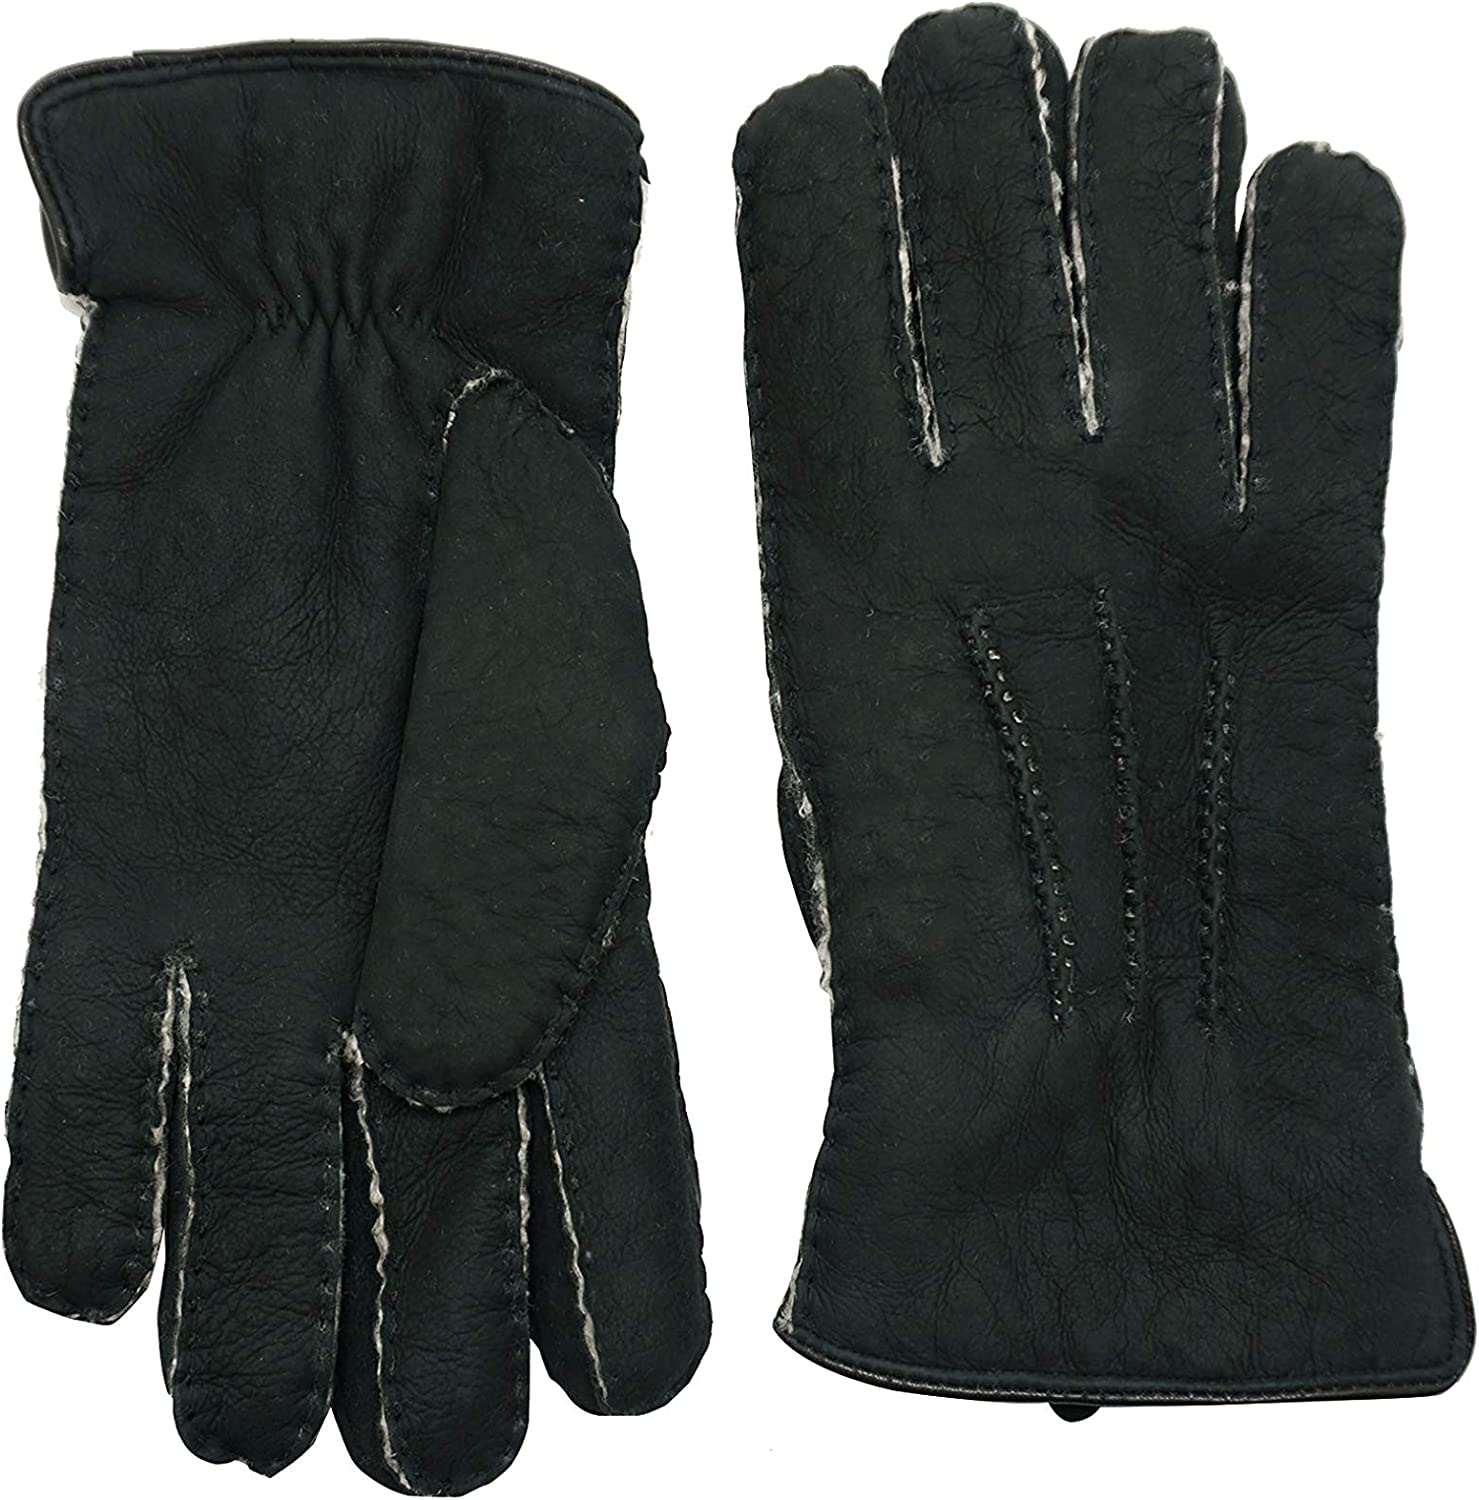 YISEVEN Women's Curly Shearling Leather Gloves